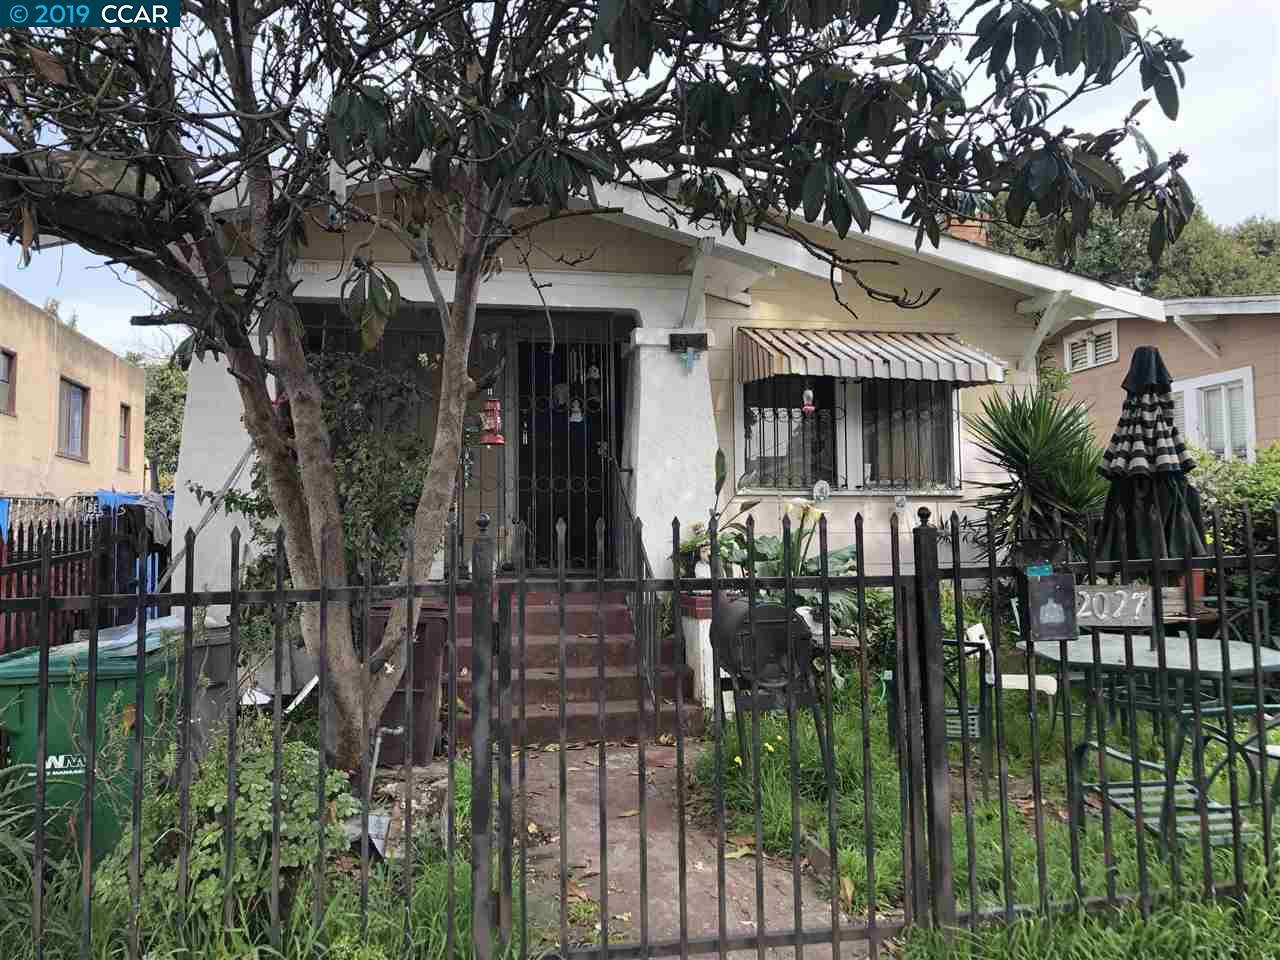 Great investment opportunity in Oakland! Charming Bungalow with second unit in back. Needs some TLC but could be a gem! Buyer to verify zoning and use. Bring all offers!